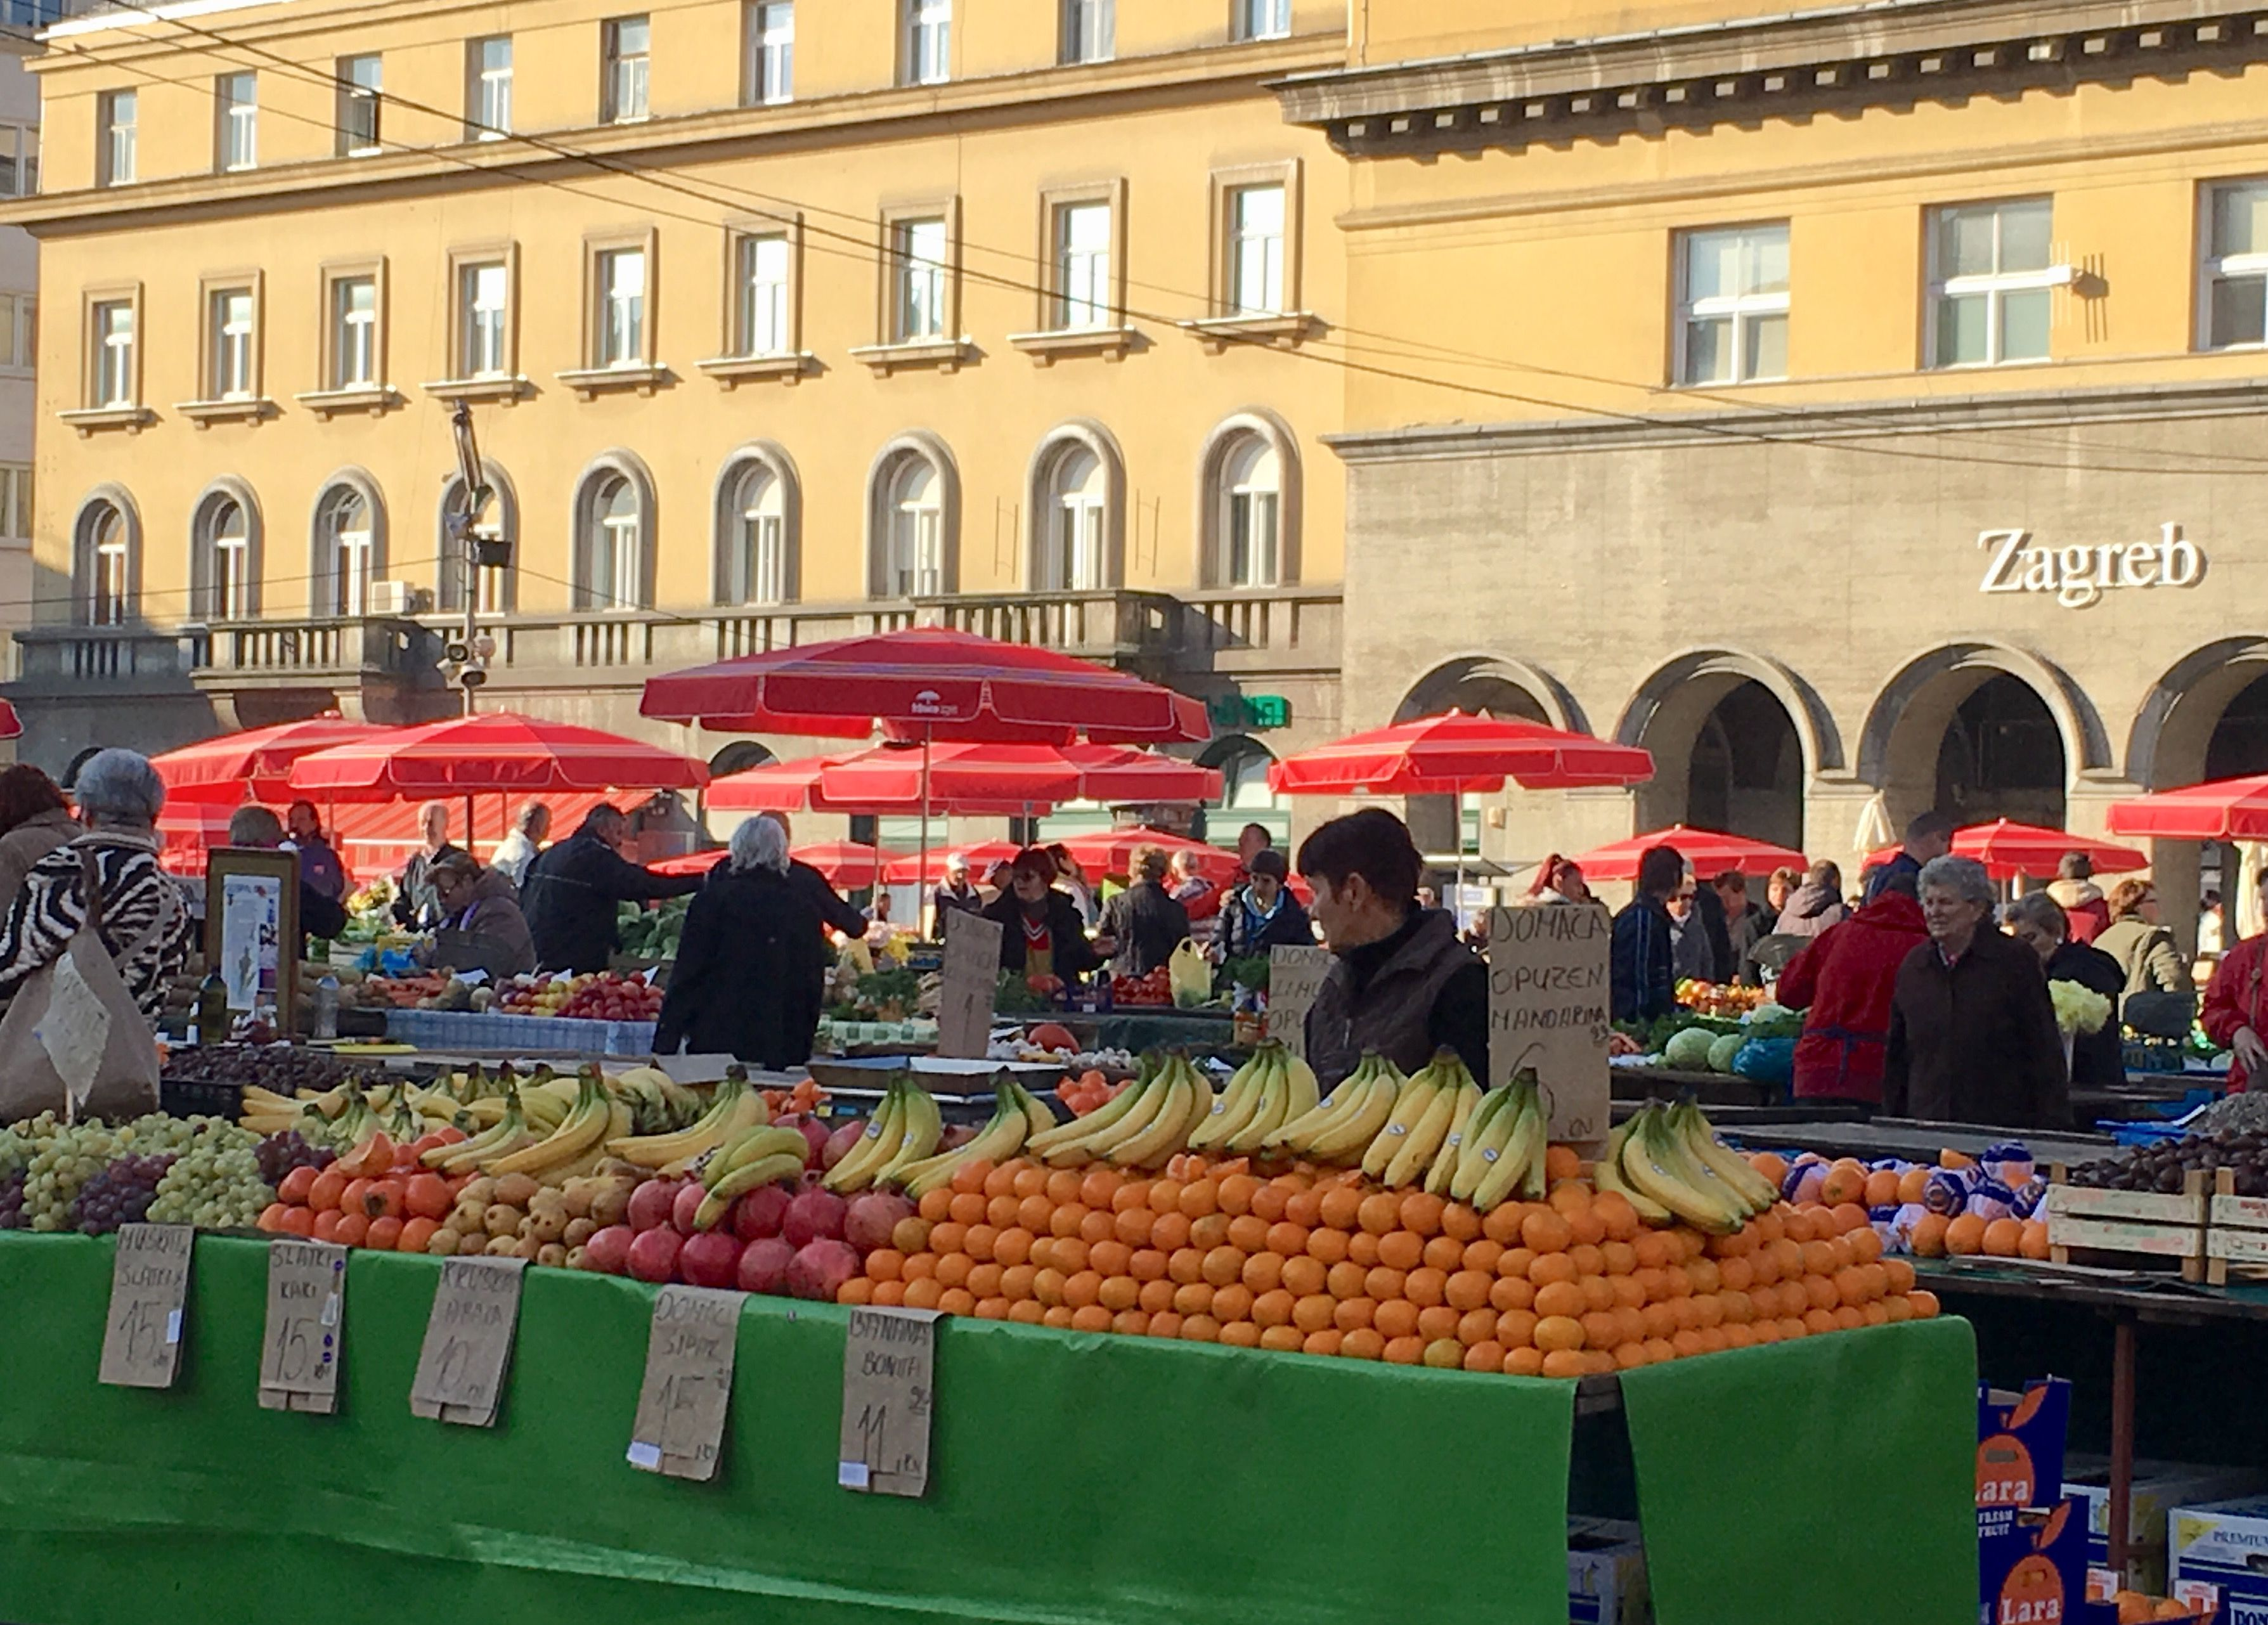 Dolac Market In The Gornji Grad District Of Zagreb Croatia Dolac Has The Traditional Open Market With Stalls And A Sheltered Mar Croatia Travel Croatia Dolac